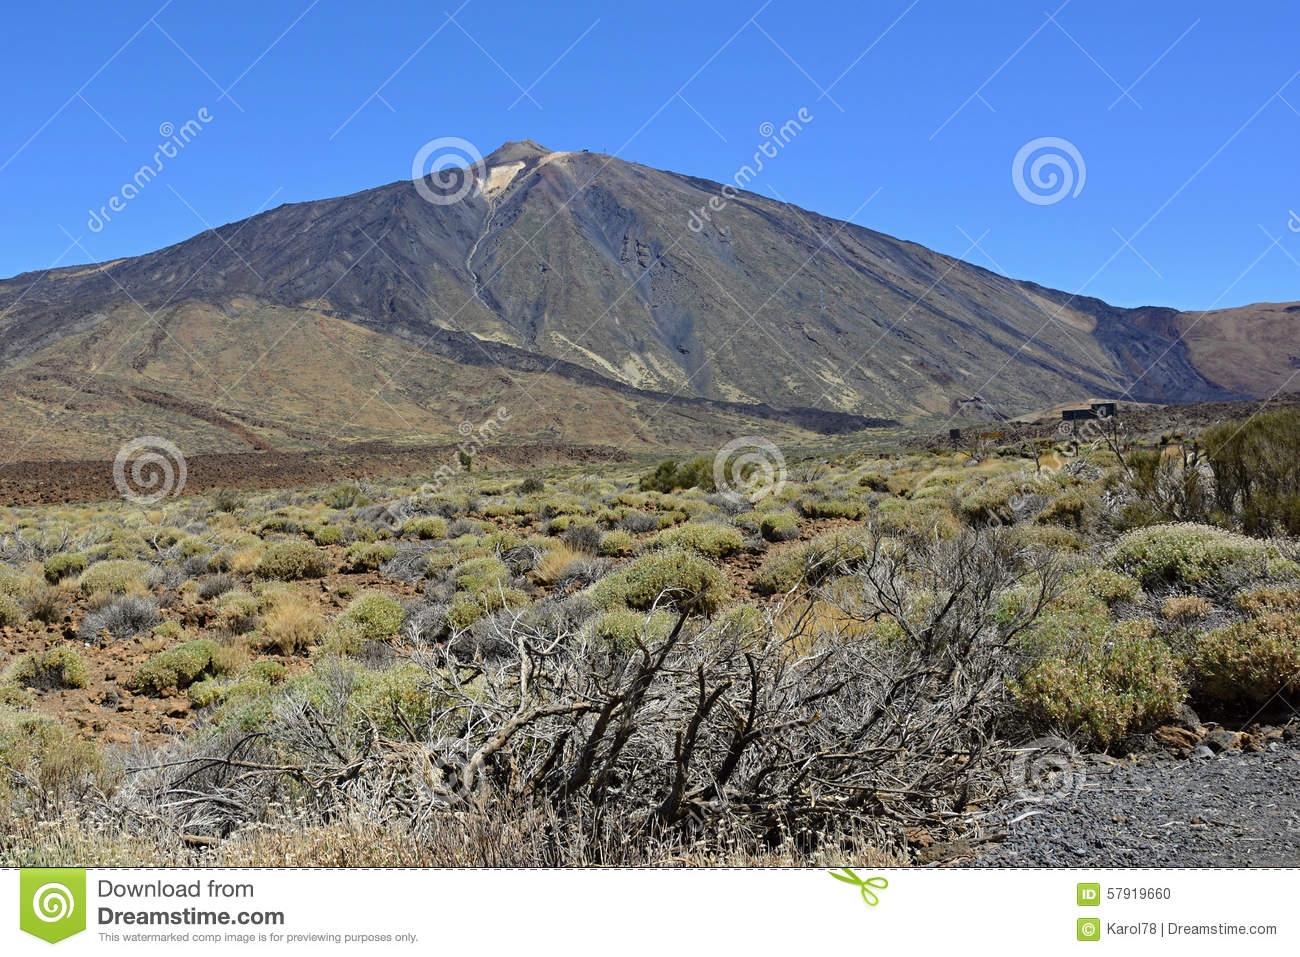 Pico De Teide (Dormant Volcano), Tenerife, Canary Islands, Spain.